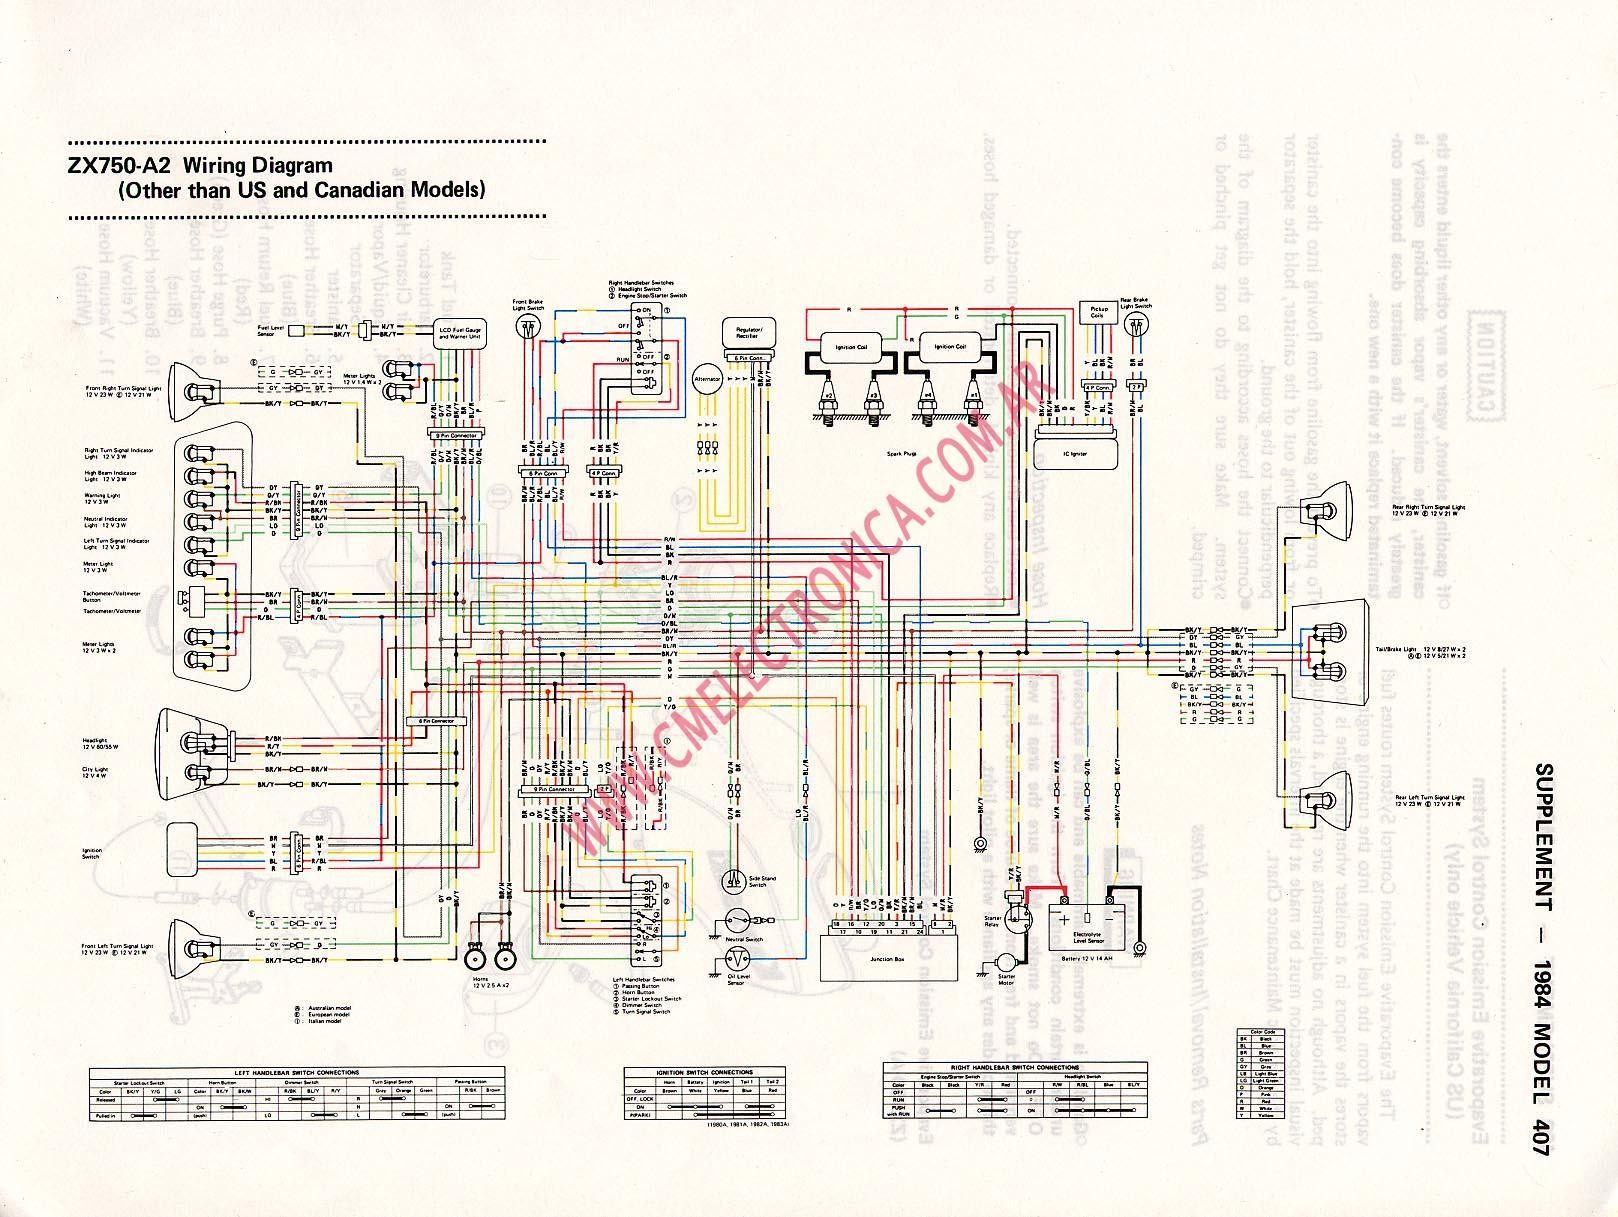 1986 Kawasaki Zl600a Wiring Schematic Smart Diagrams Diagram For A Bayou 220 Image Rh Mainetreasurechest Com Prairie 400 Voyager Wire